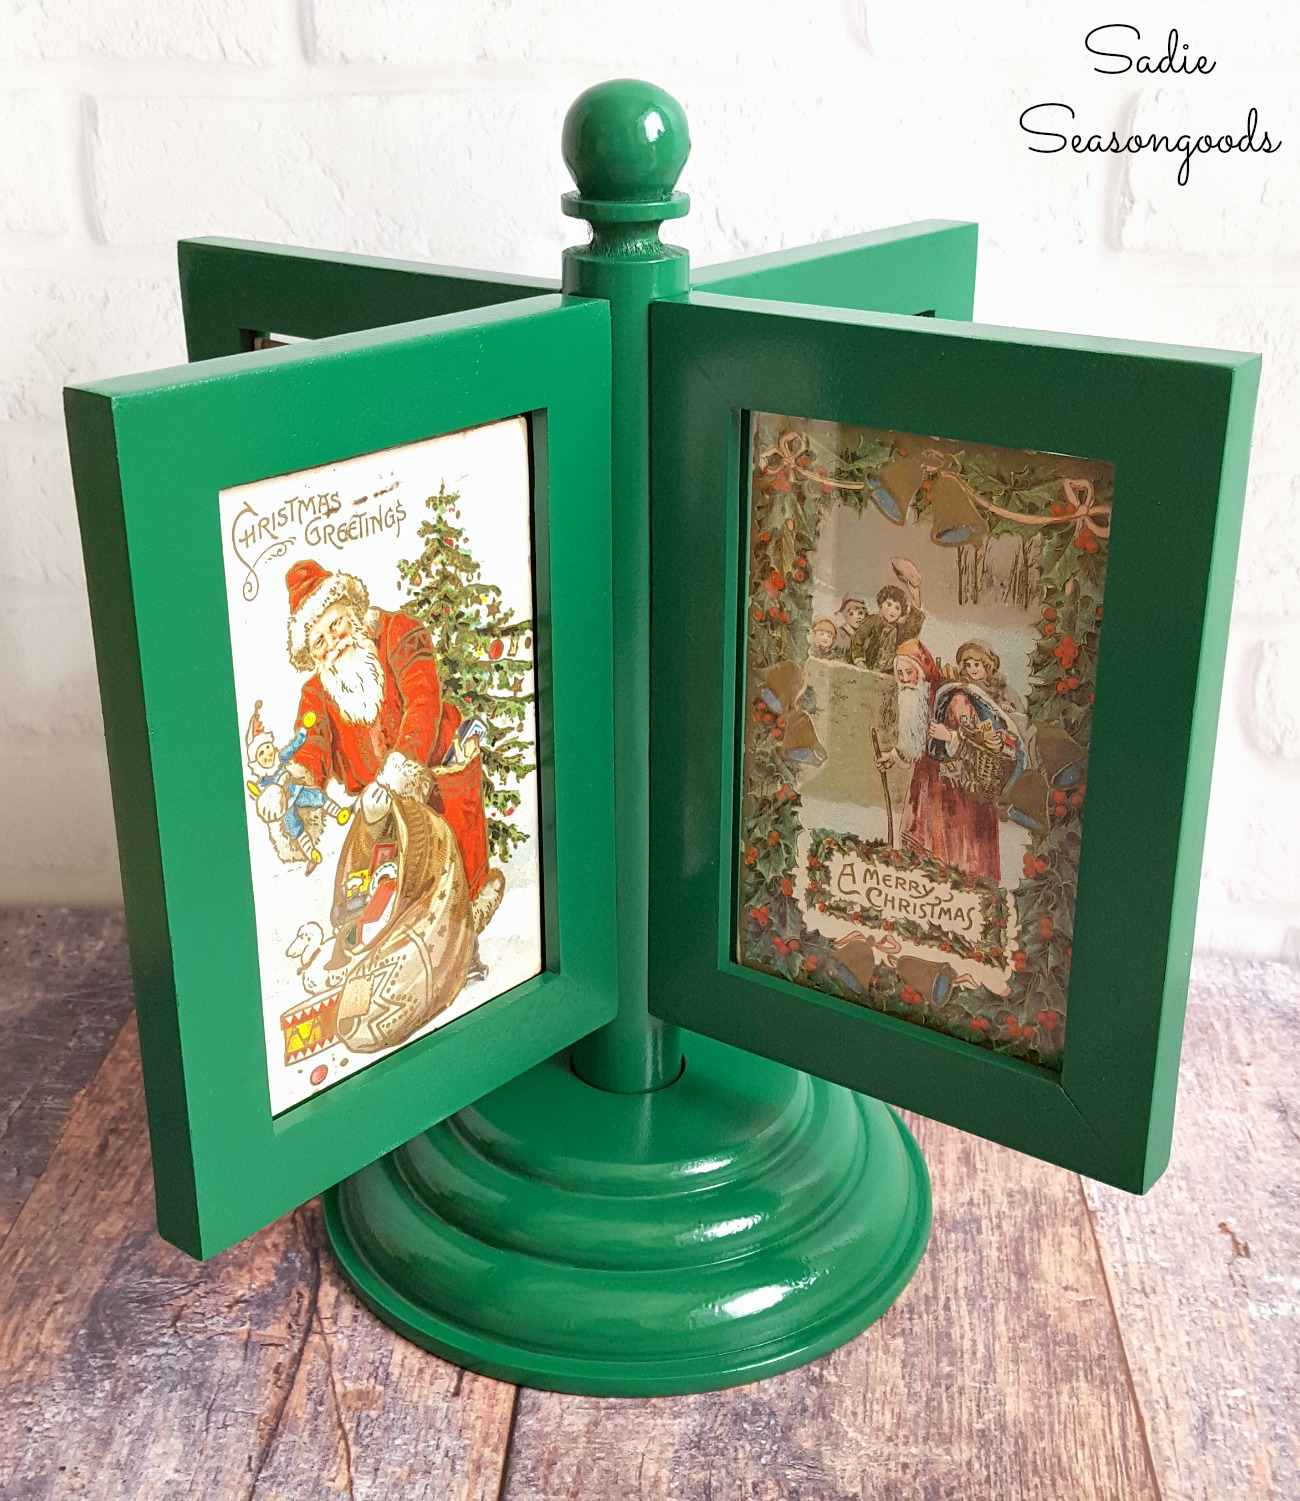 Decorating for Christmas with a spinning frame and Victorian Christmas postcards